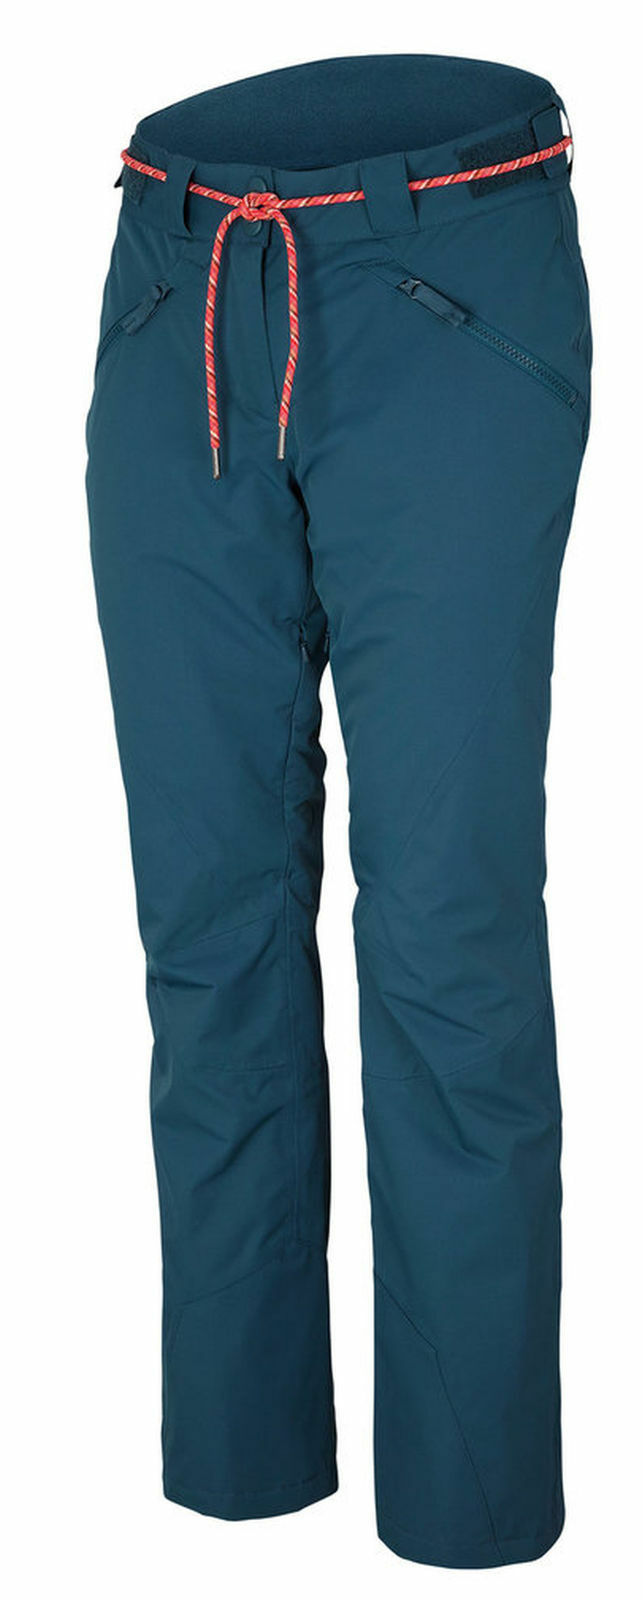 Ziener  Women's Ski Trousers Classic Pants Thorina Lady bluee  big discount prices